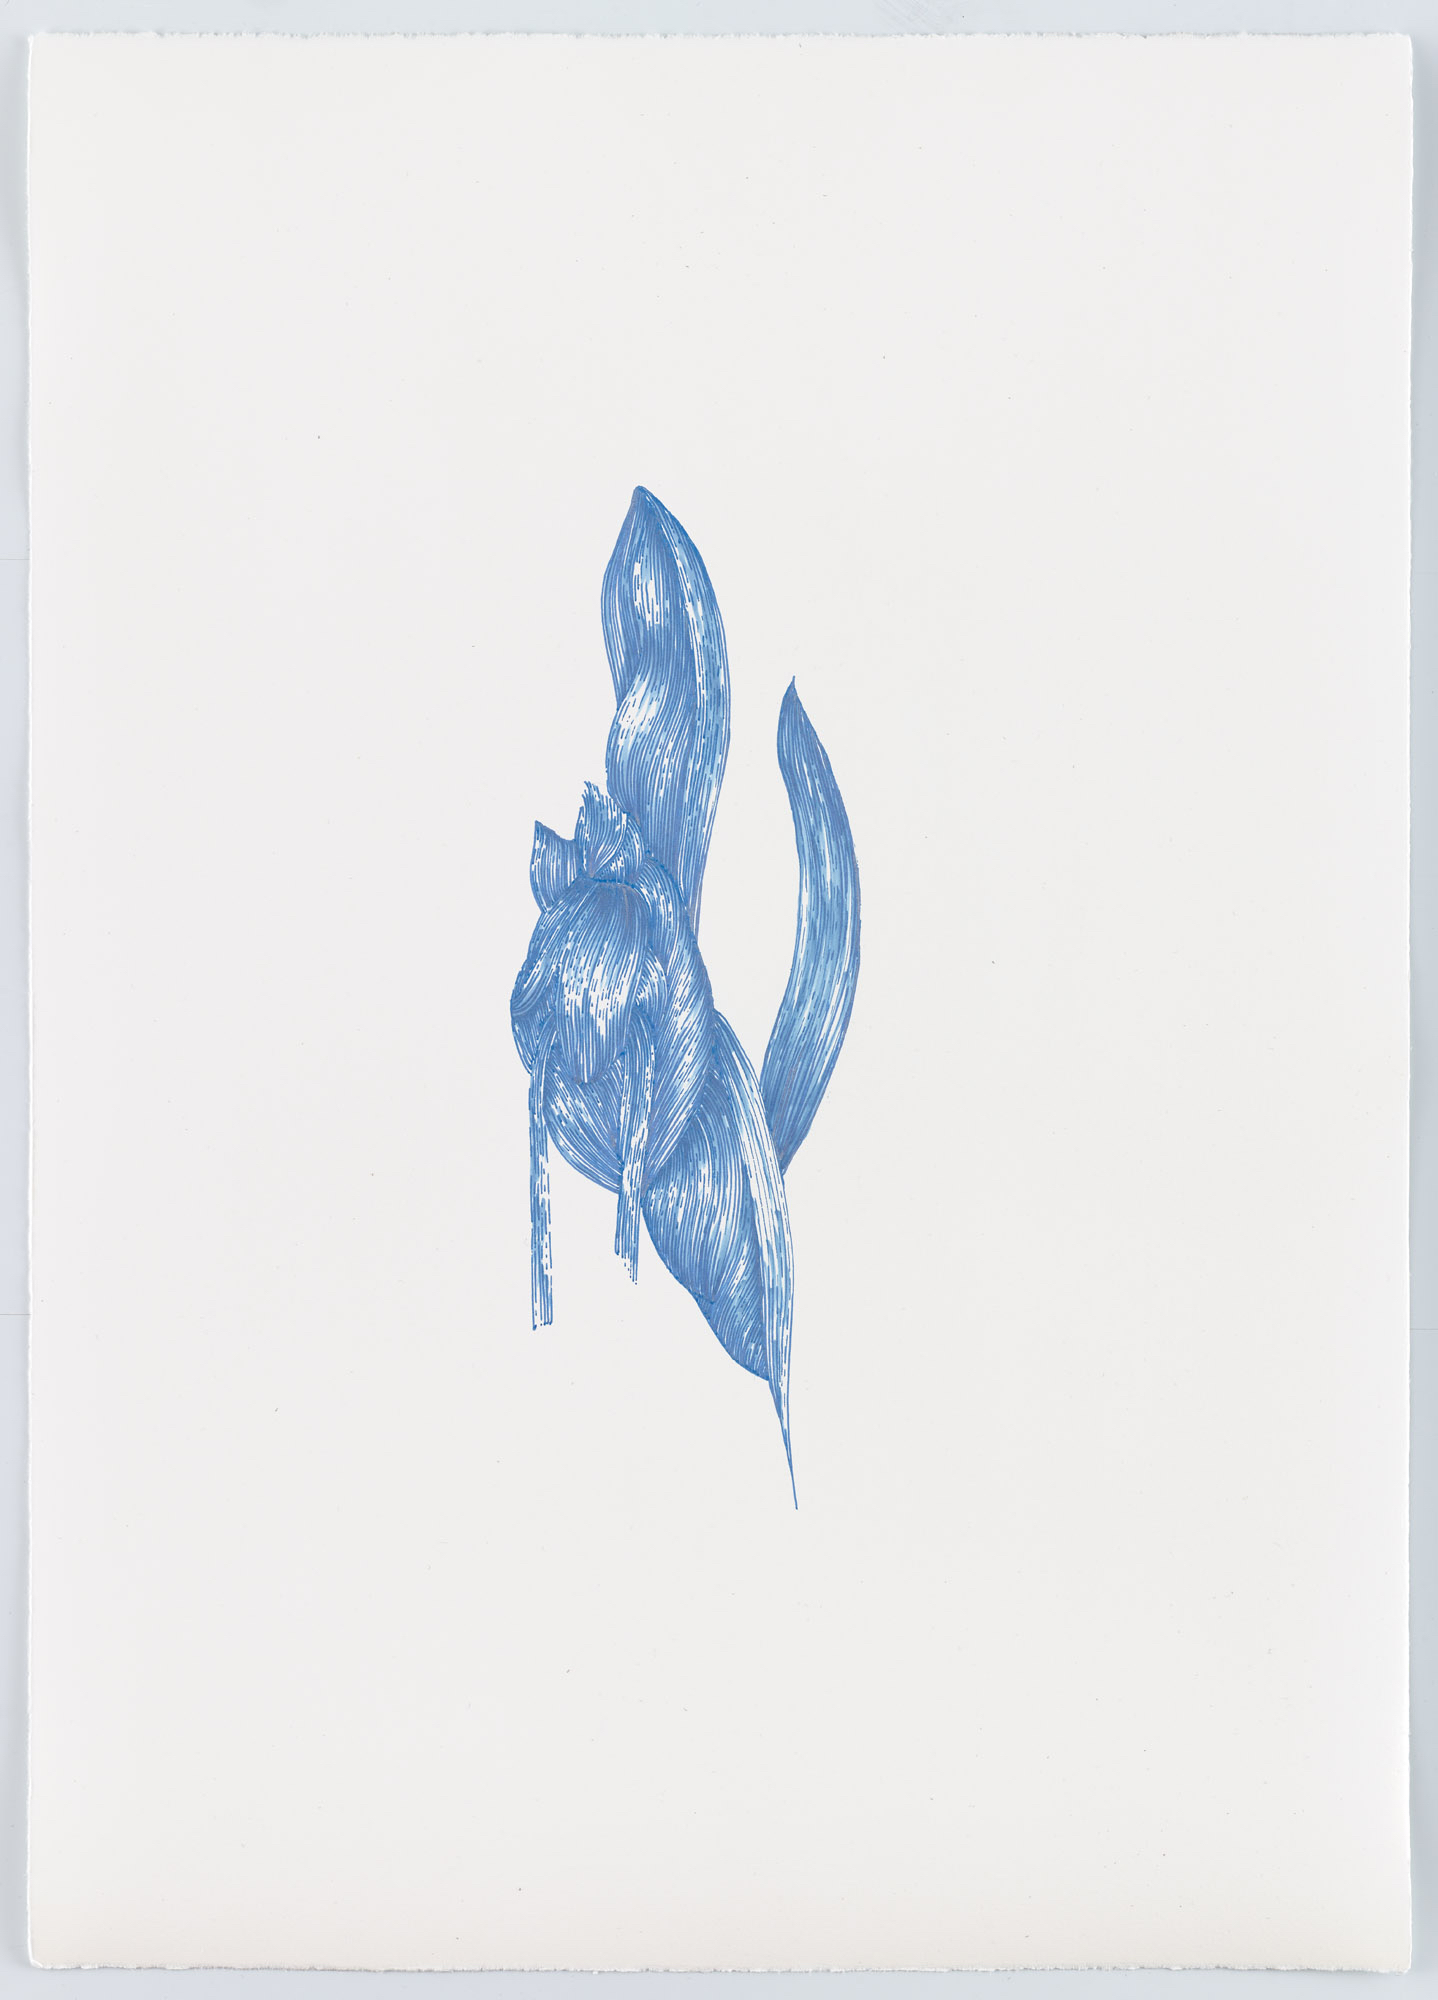 BK P12987 | untitled | metallic blue gloss paint marker on paper | 59x42cm | 2016